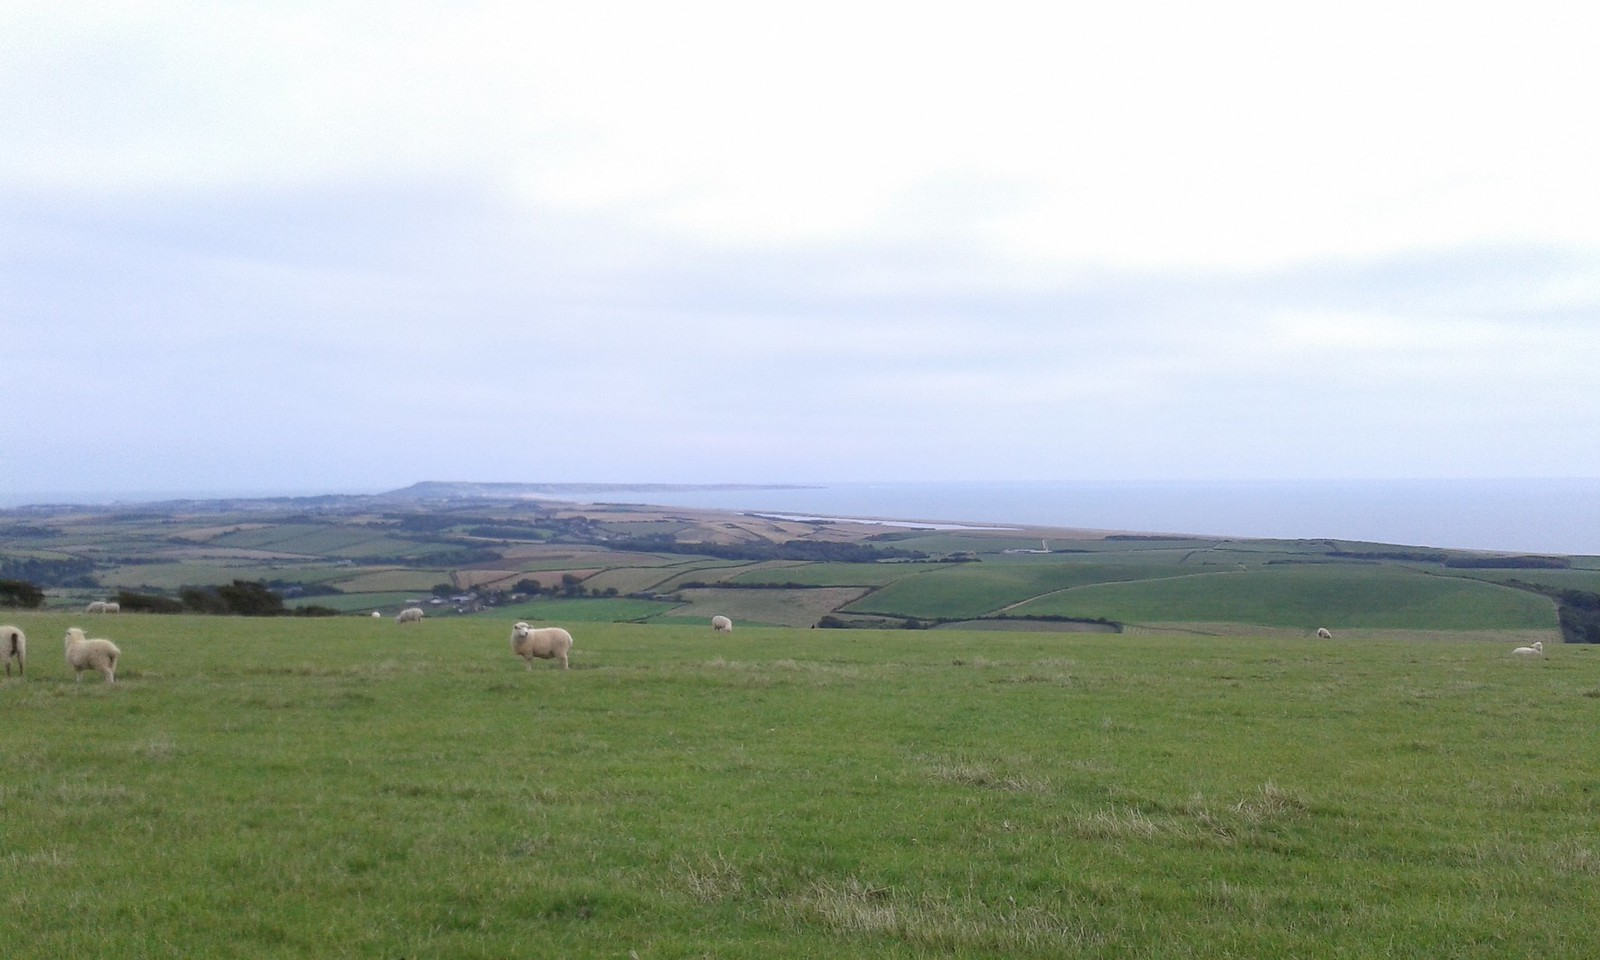 20150816_143835 Portland view from South Dorset Ridgeway